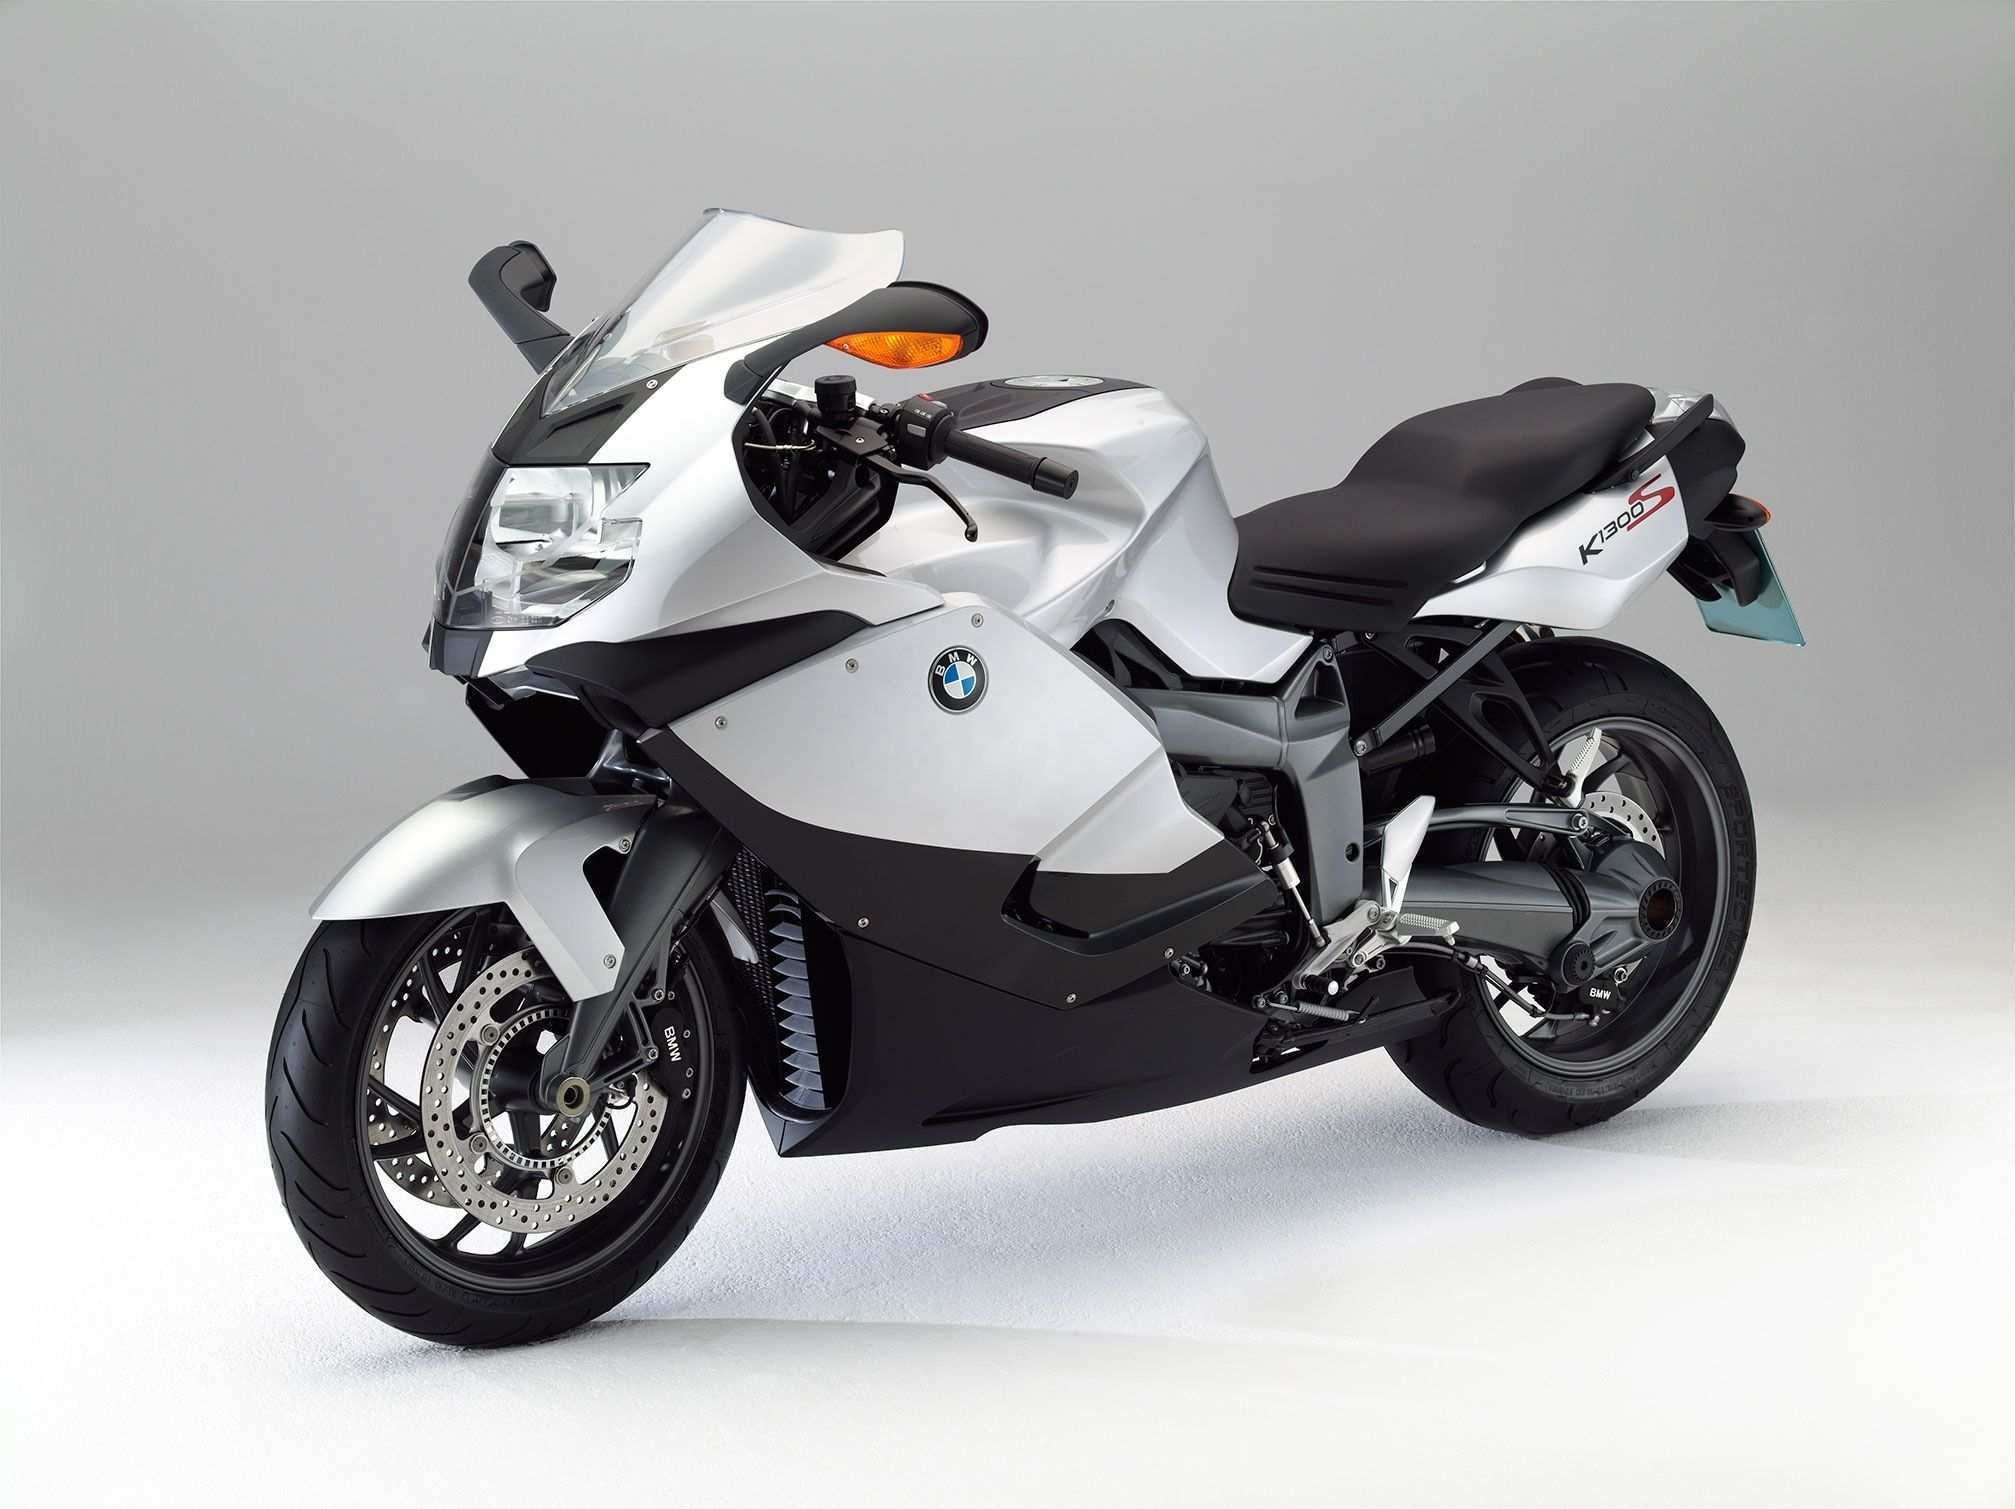 34 Concept of 2019 Bmw K1300S Images for 2019 Bmw K1300S